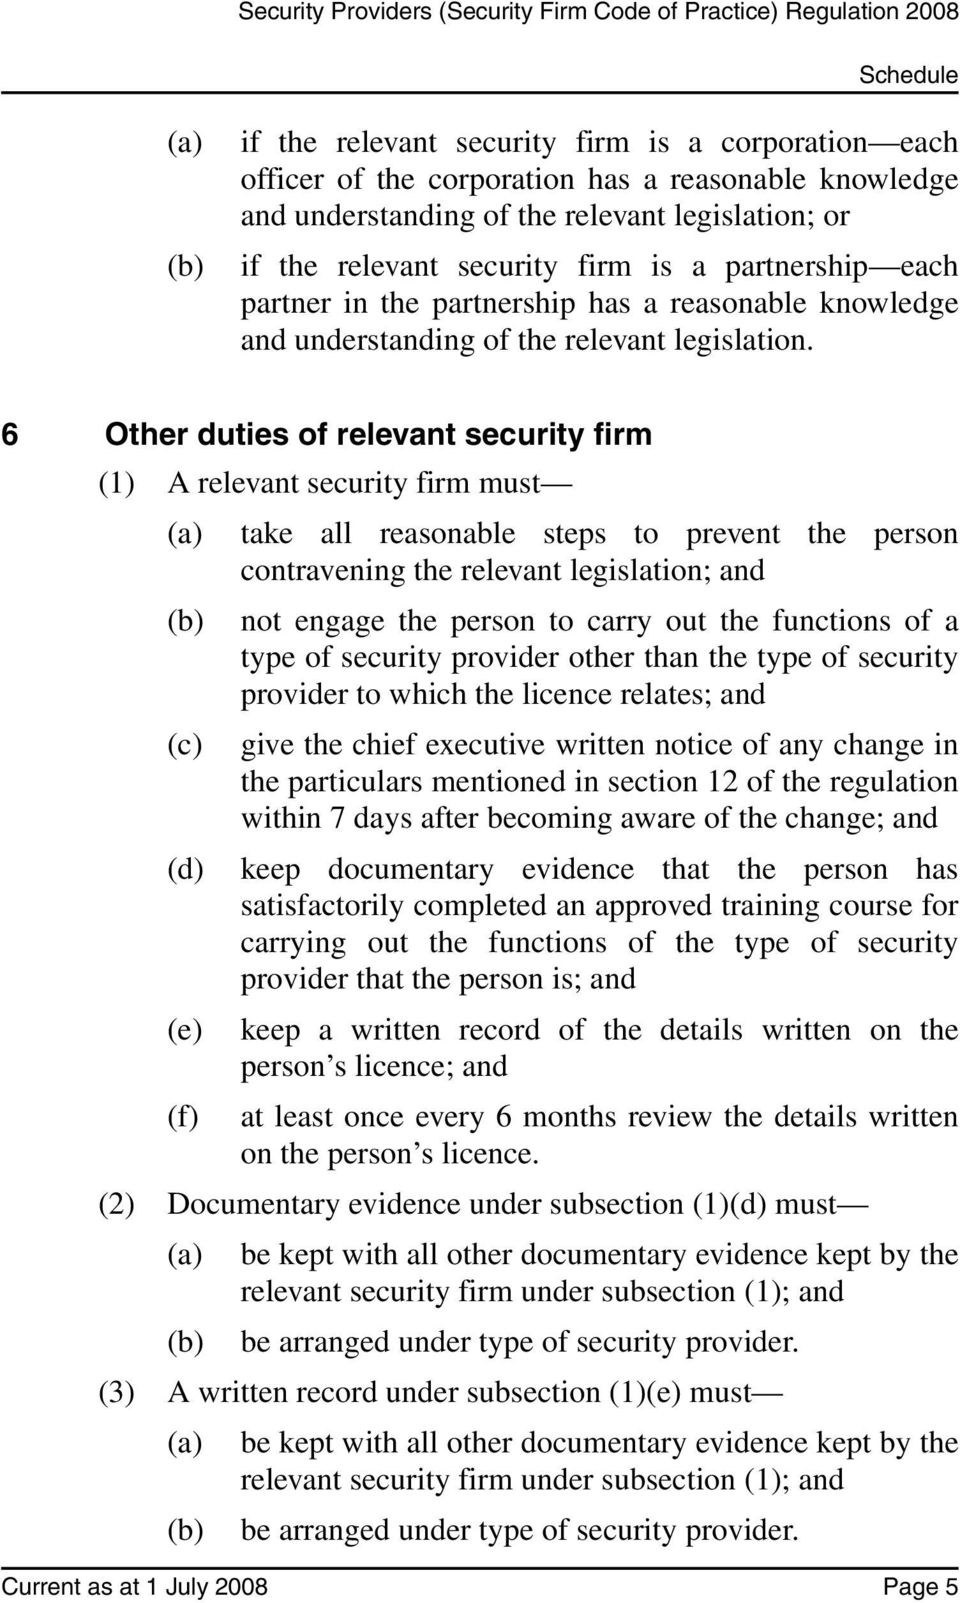 6 Other duties of relevant security firm (1) A relevant security firm must (a) take all reasonable steps to prevent the person contravening the relevant legislation; and (b) not engage the person to